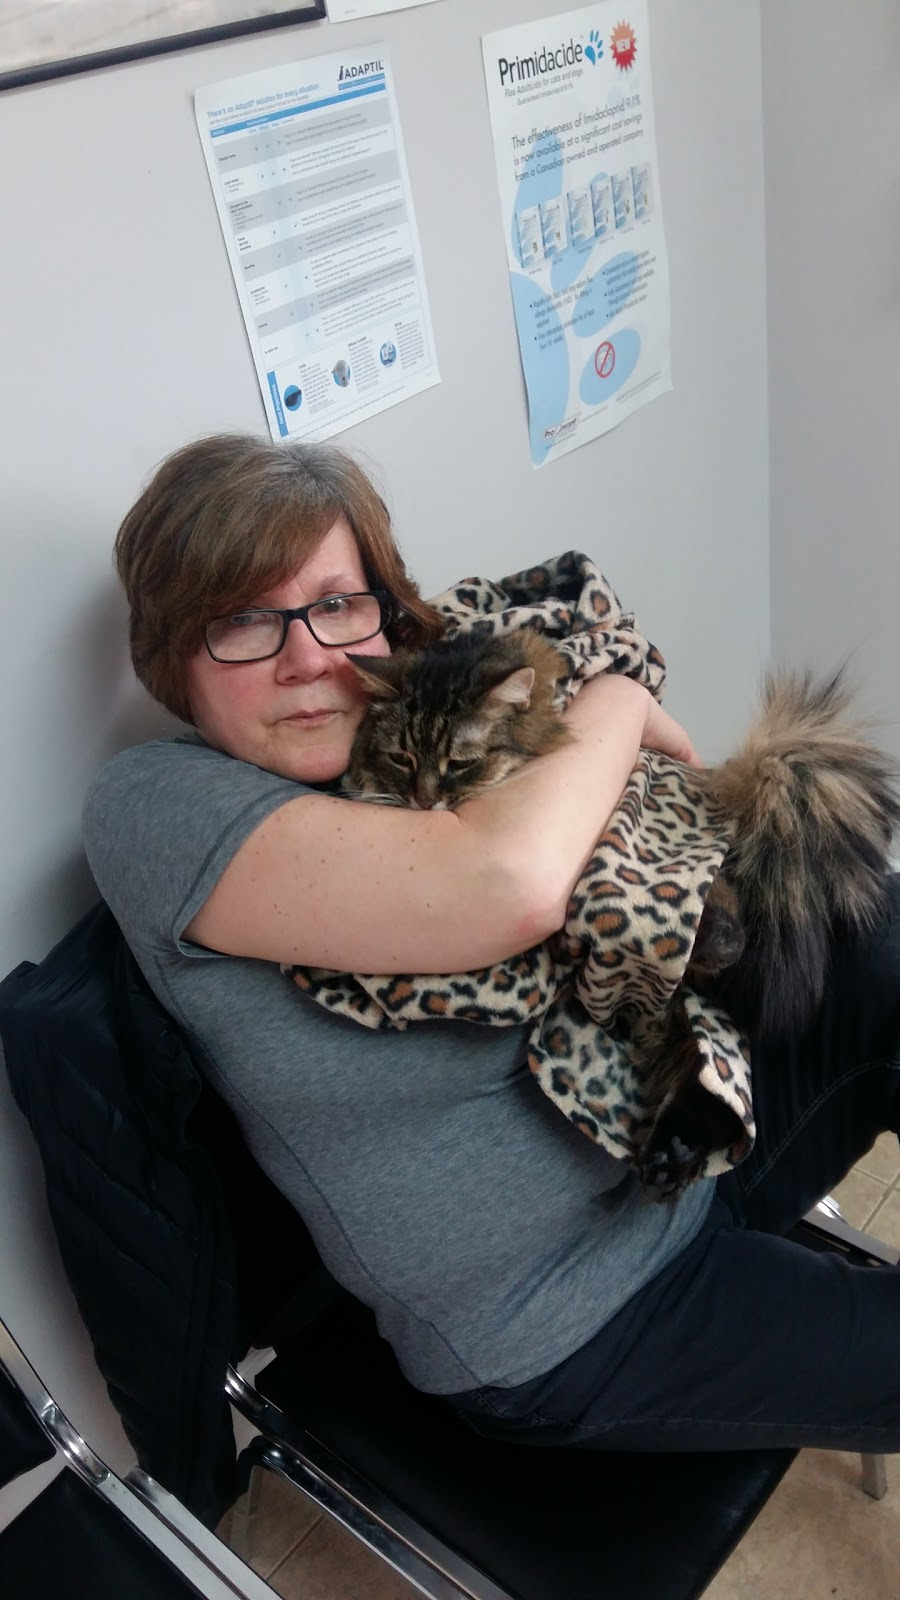 Bruce Street Animal Hospital | veterinary care | 37 Bruce St, Kitchener, ON N2B 1Y4, Canada | 5199544522 OR +1 519-954-4522